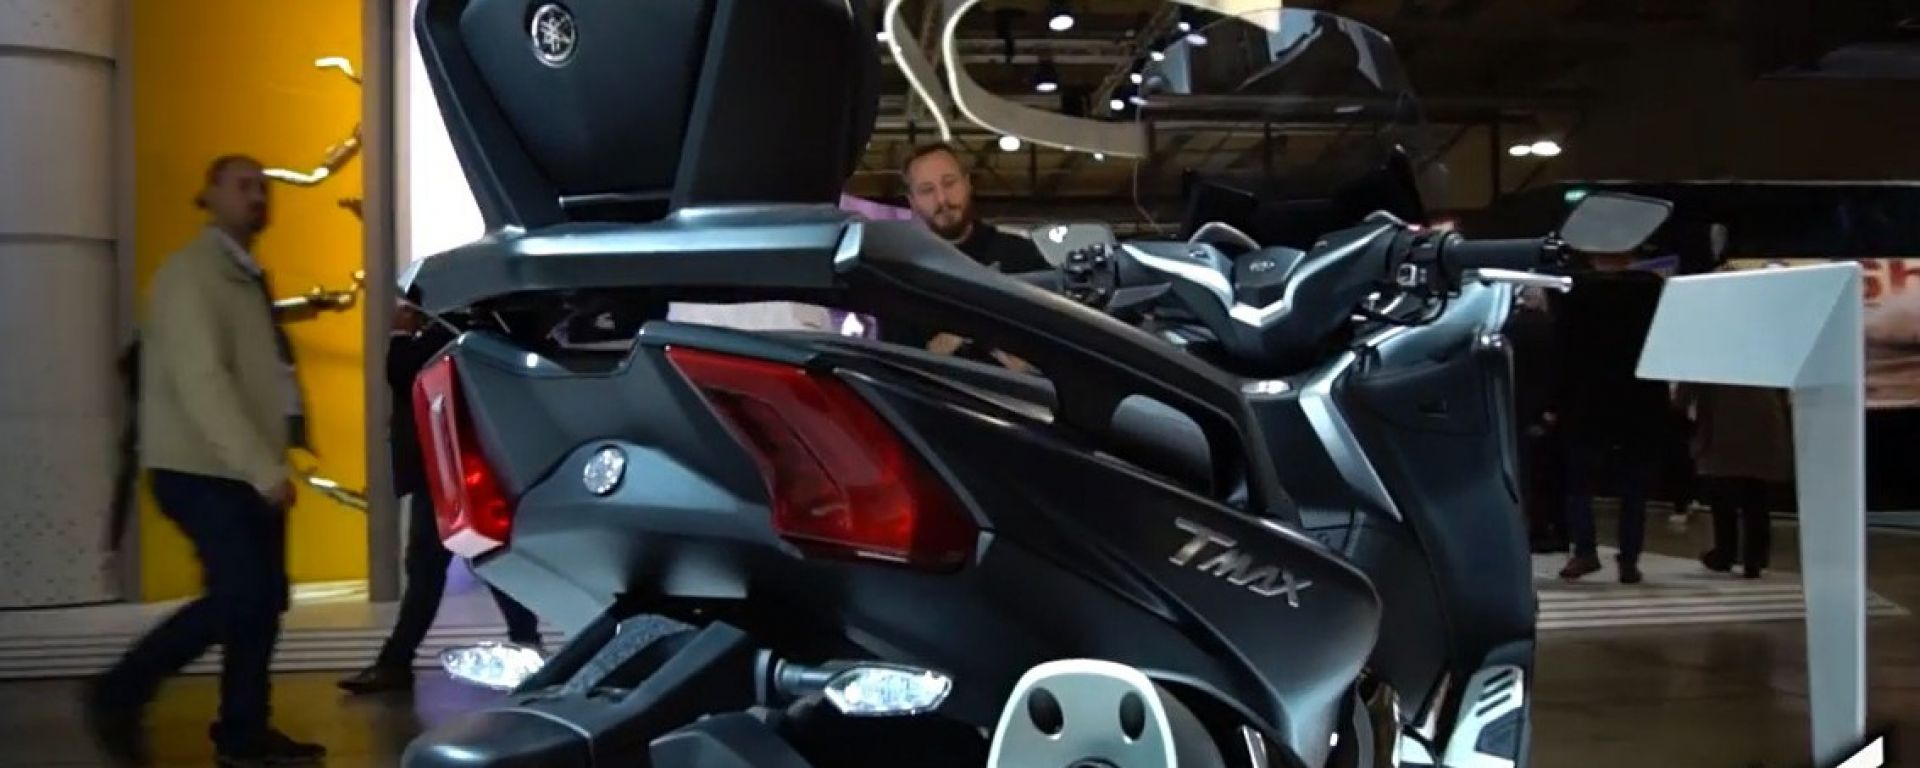 Live Eicma 2016: Yamaha TMax in video